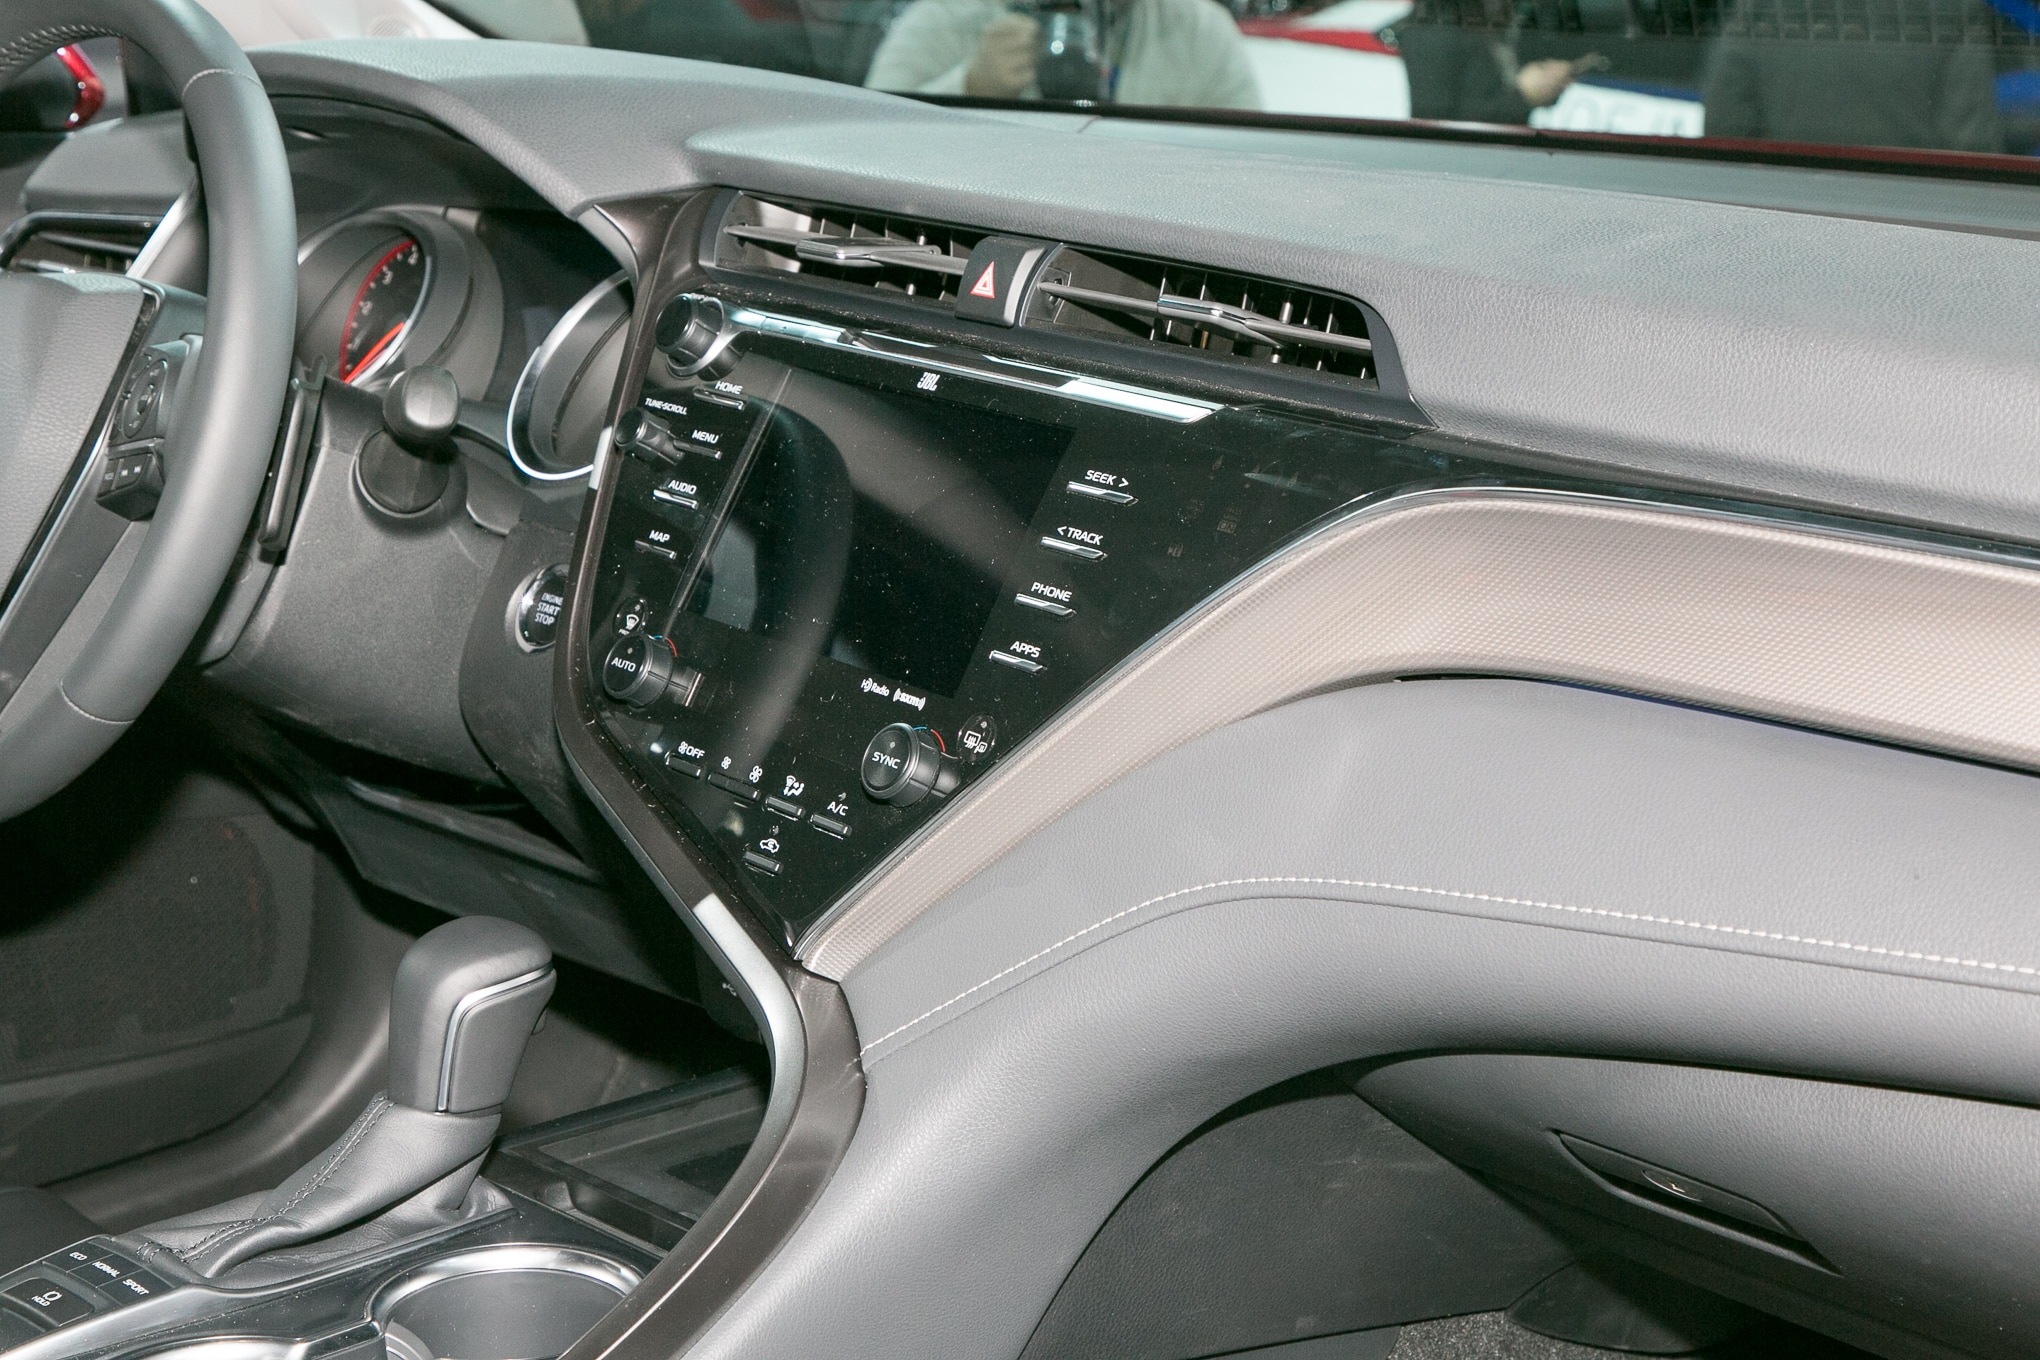 2018 toyota camry interior. Delighful Toyota 09 With 2018 Toyota Camry Interior